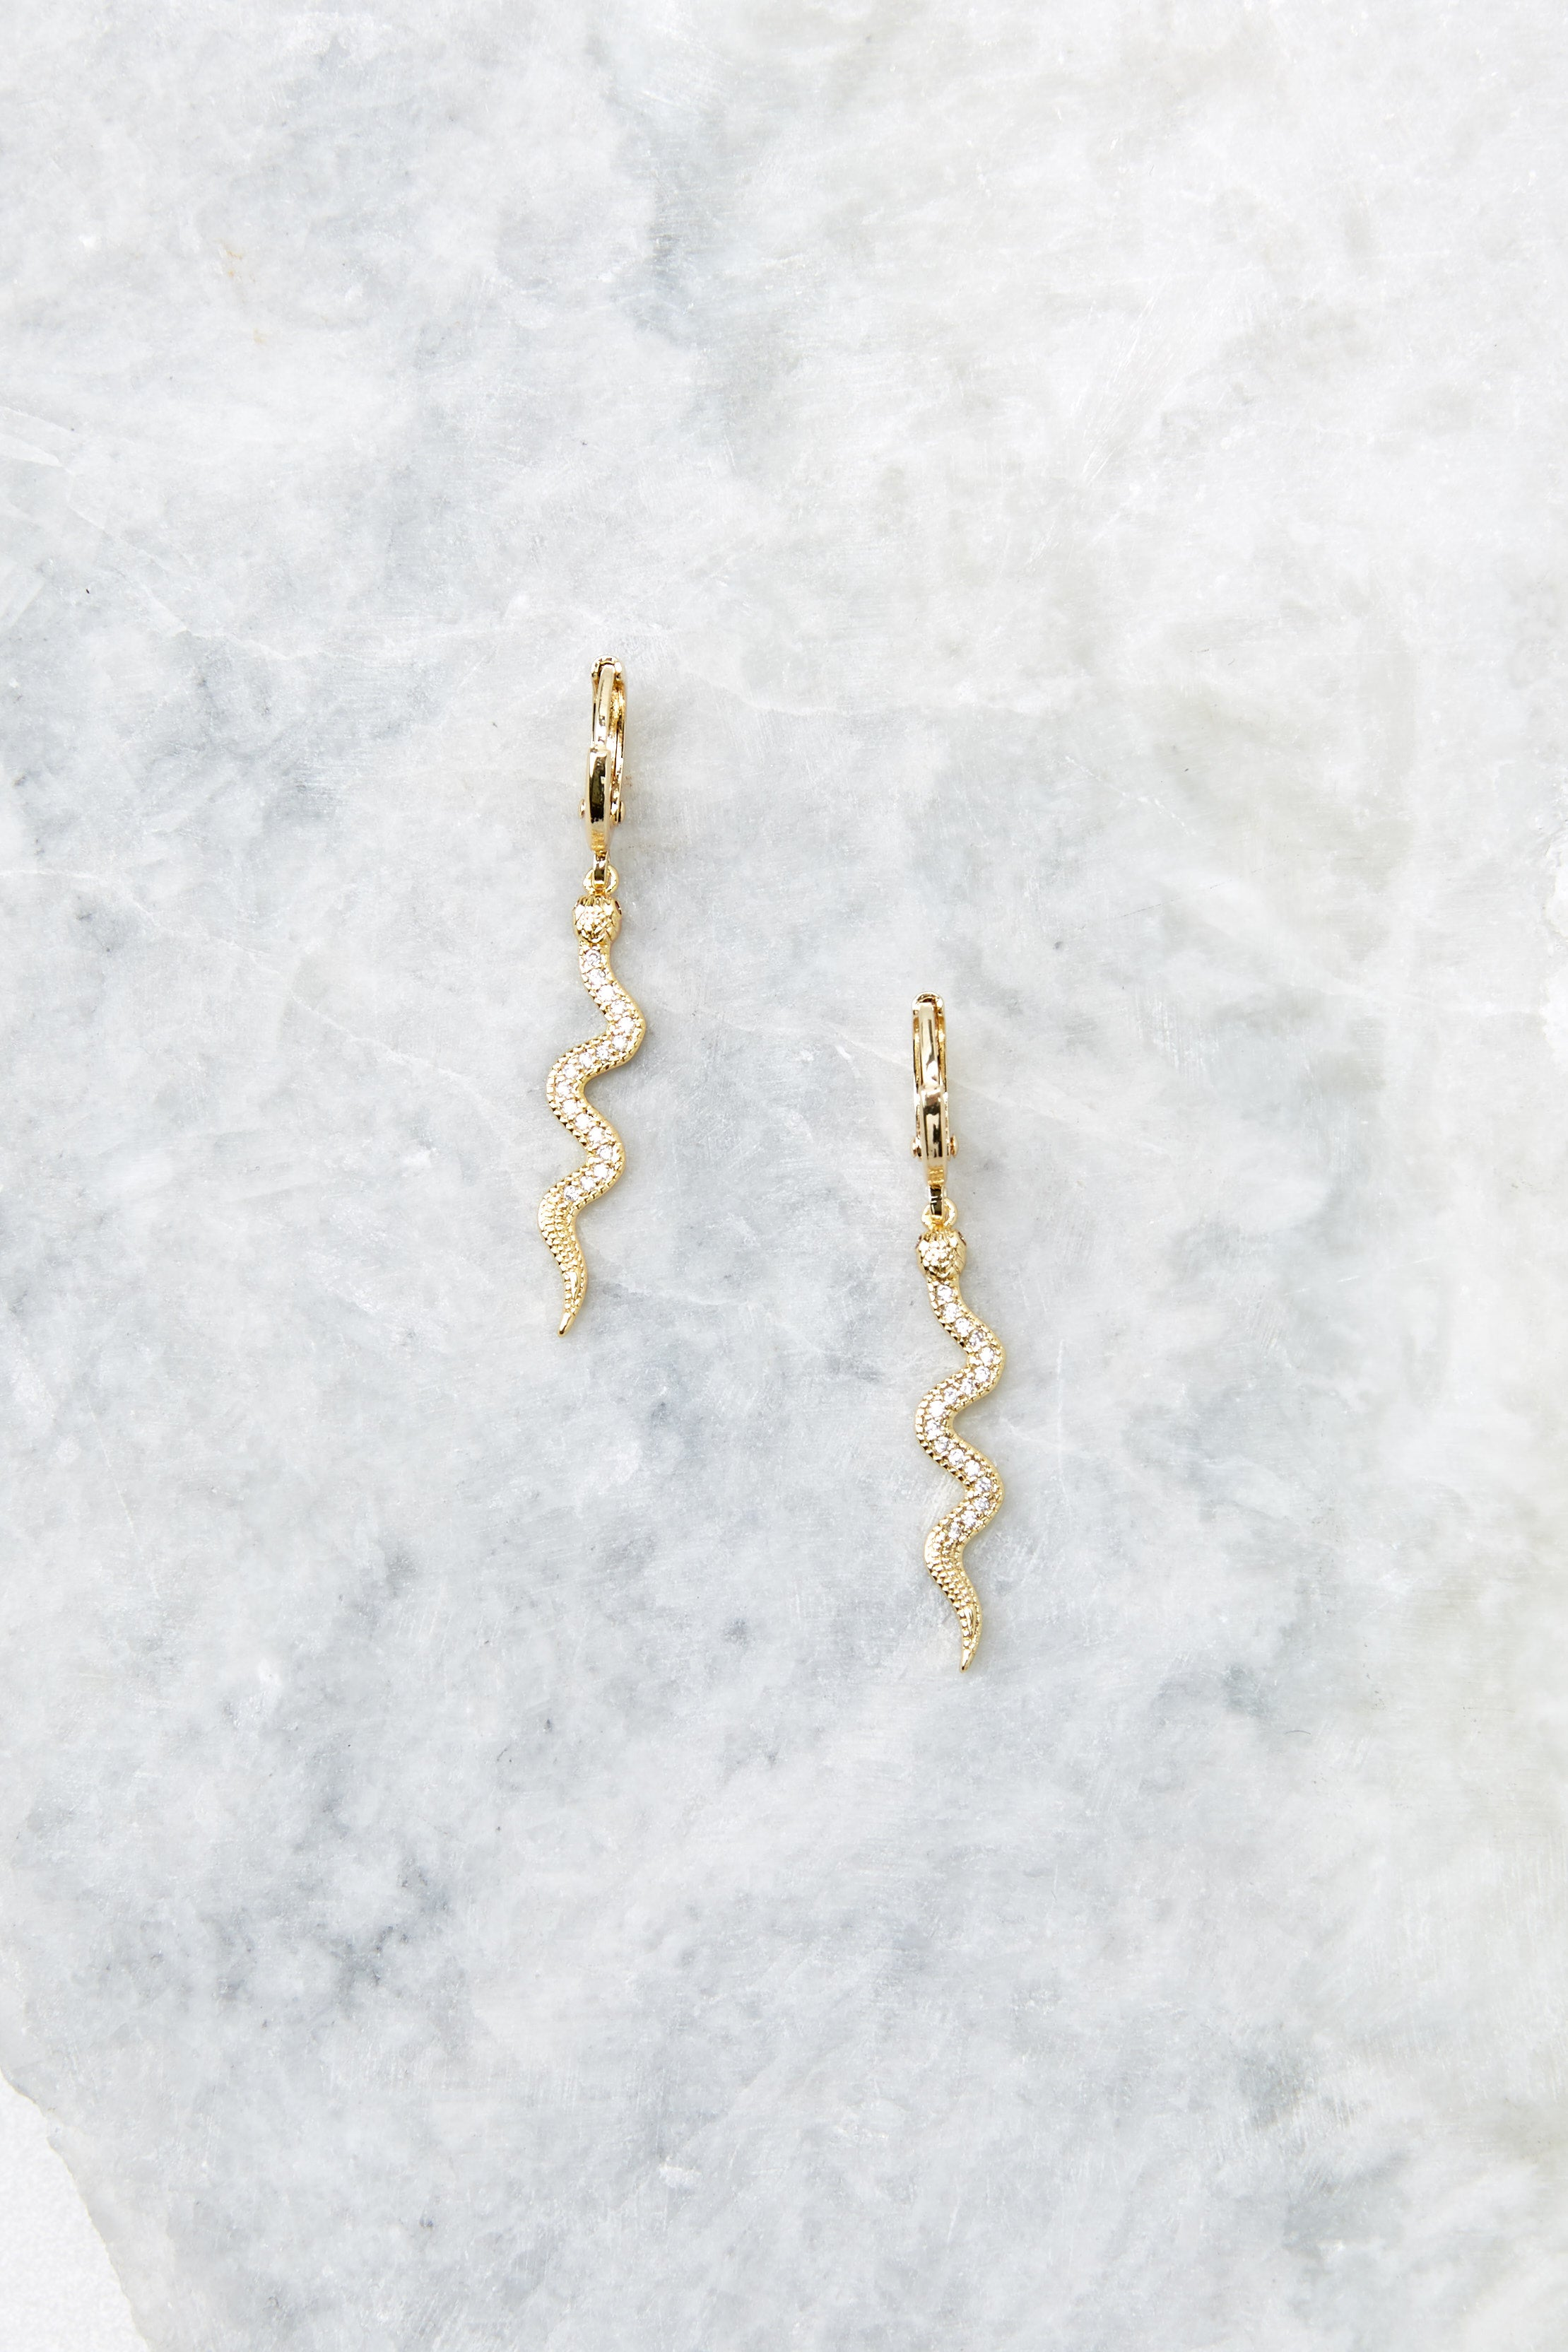 Keep Your Secrets Gold Snake Earrings